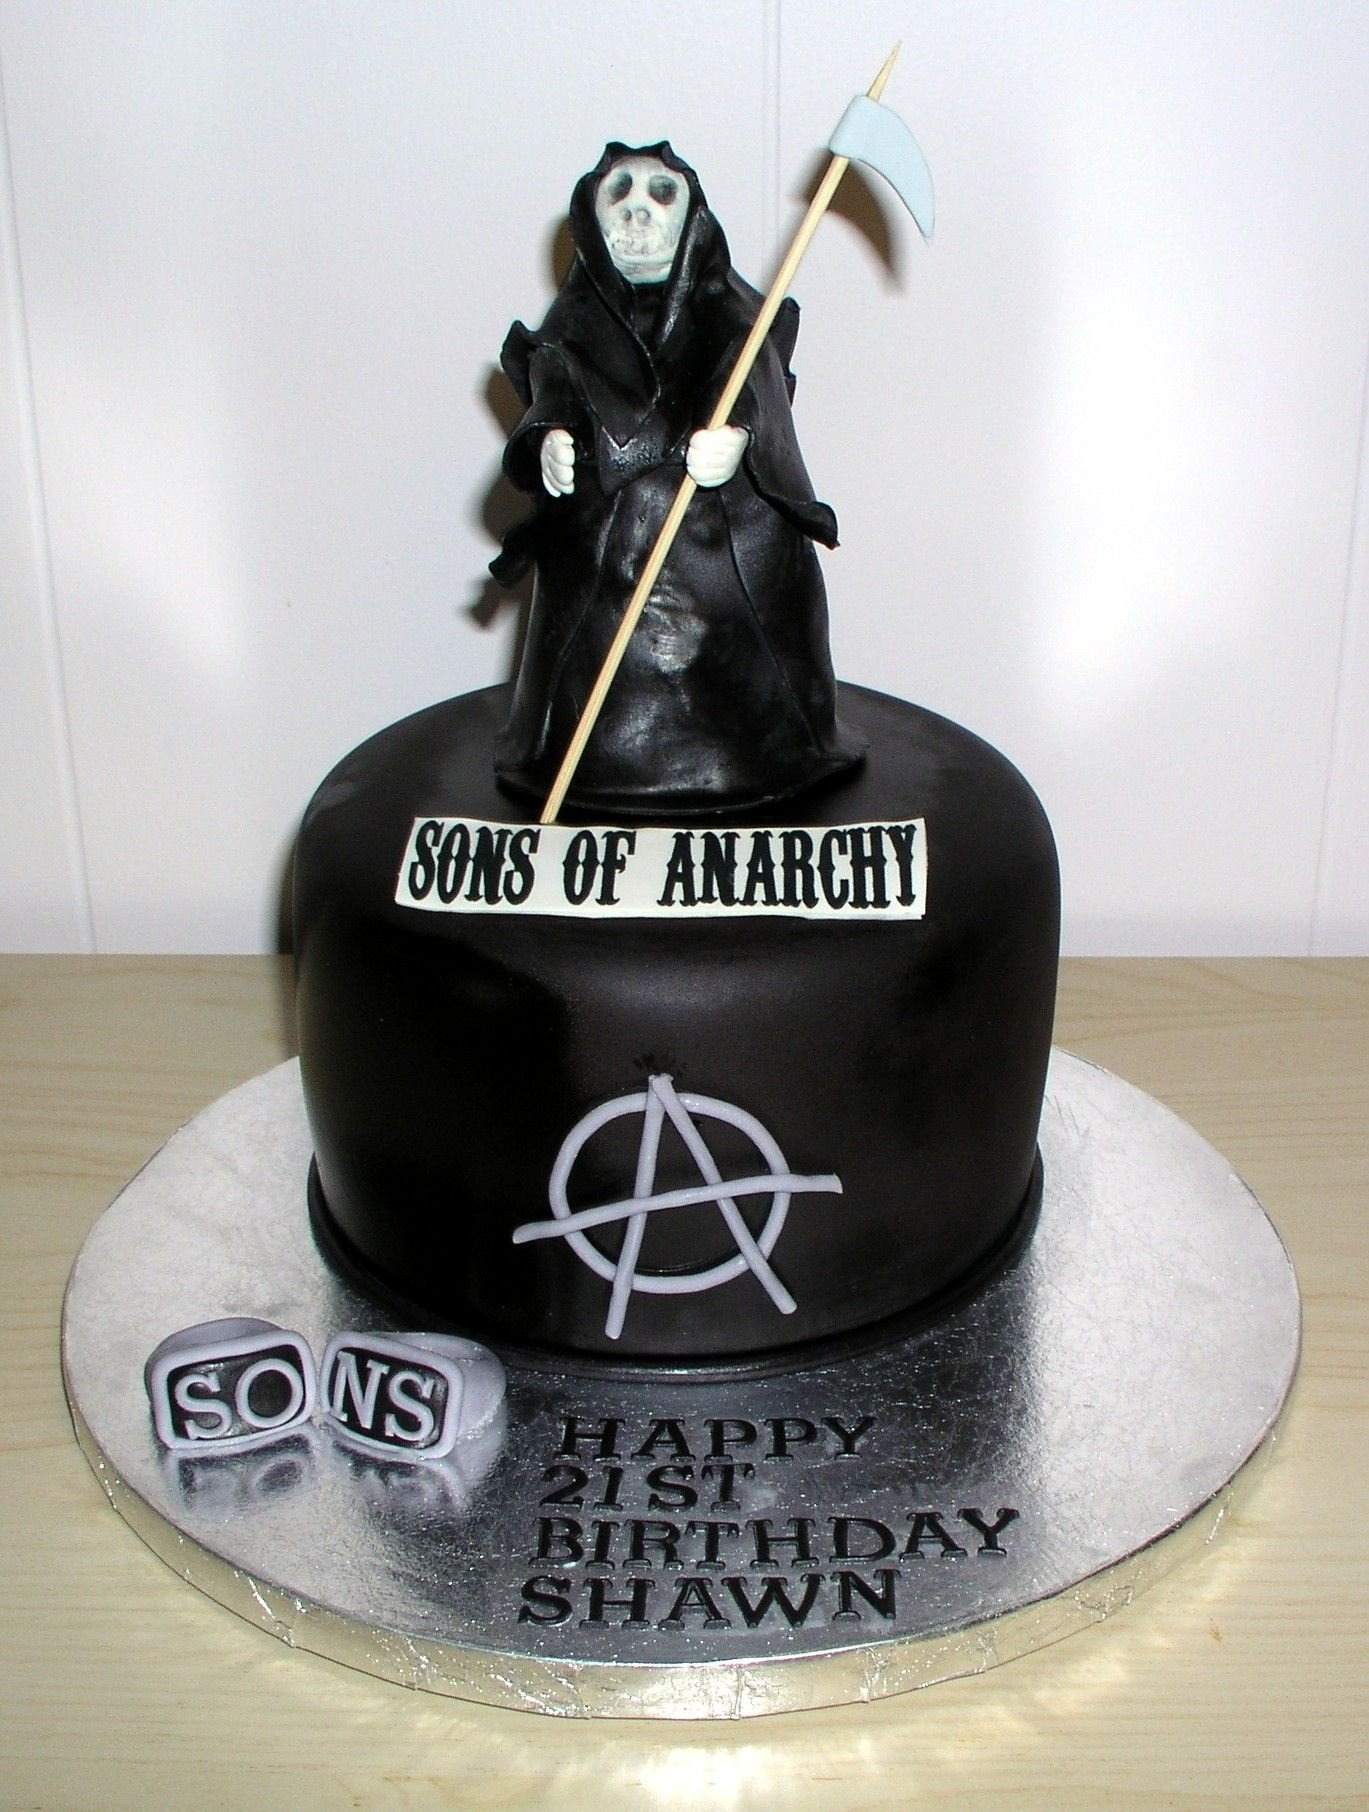 10 Stunning Sons Of Anarchy Party Ideas sons of anarchy cake cake dreams cookie wishes pinterest 2021